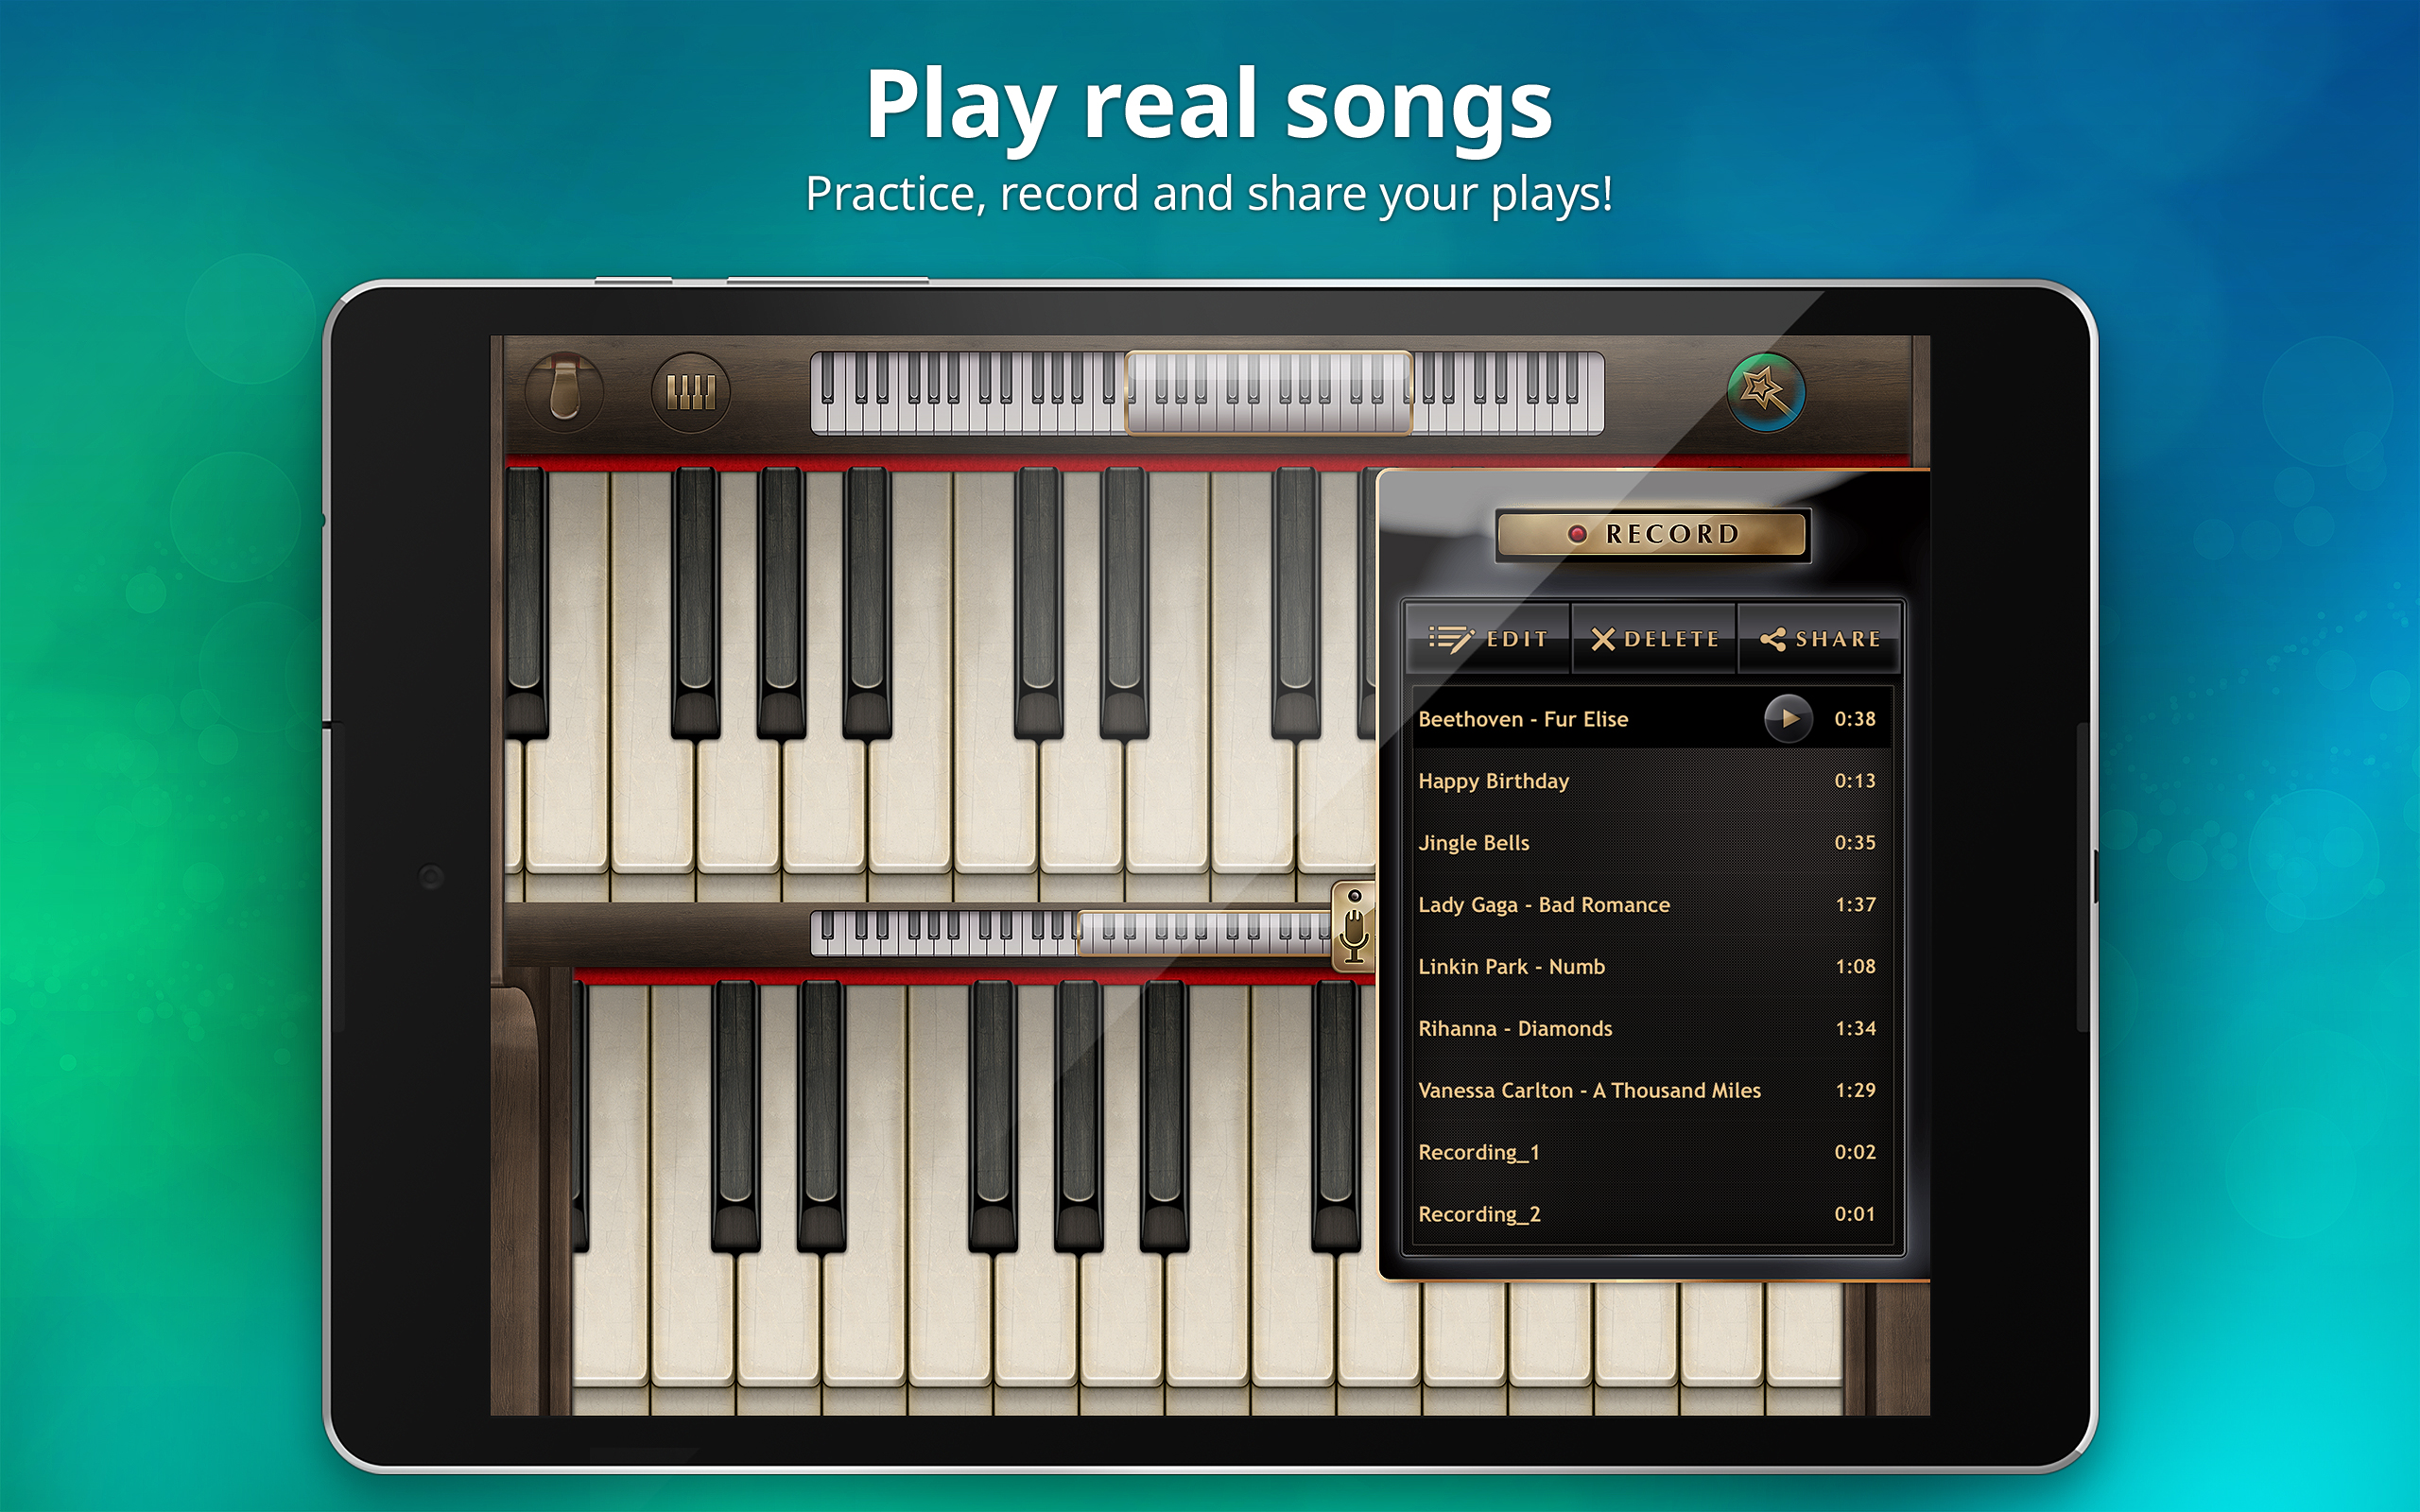 Piano - Virtual Piano Keyboard with Games to Learn Songs, Notes and Chords: Amazon.co.uk ...